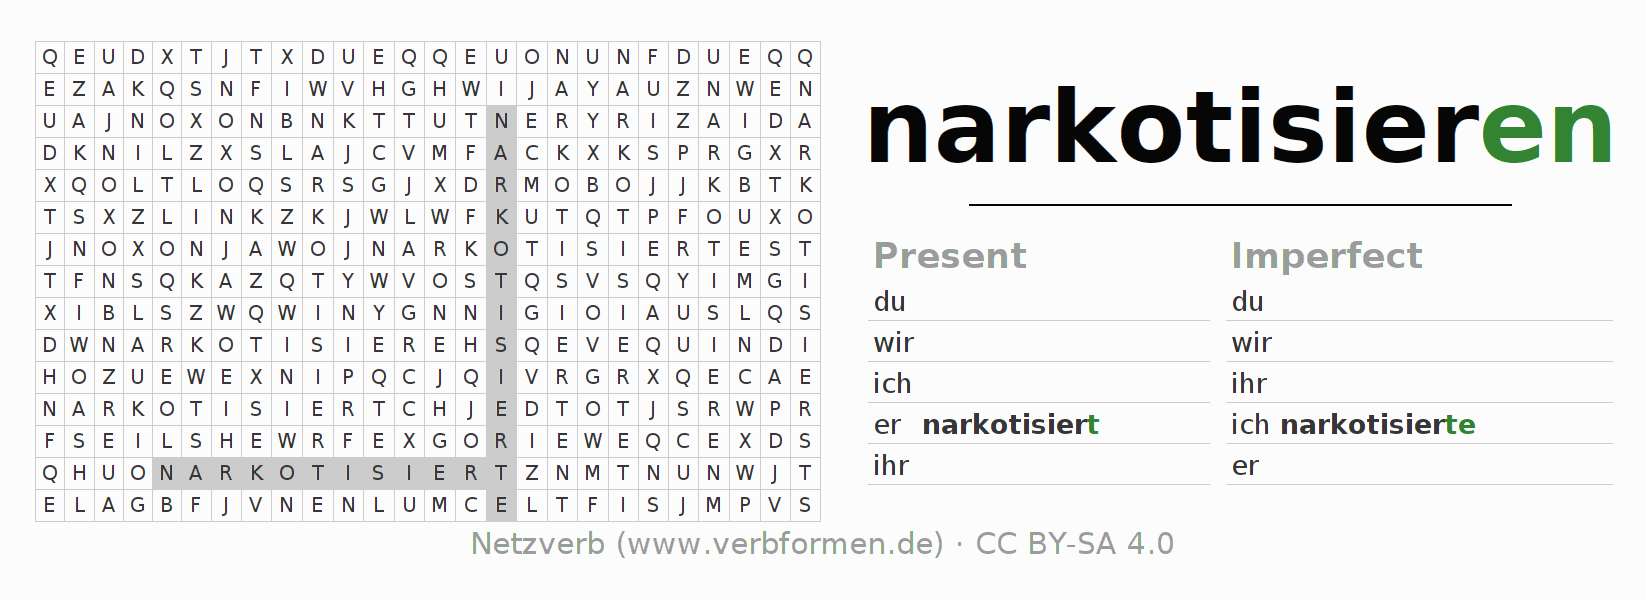 Word search puzzle for the conjugation of the verb narkotisieren